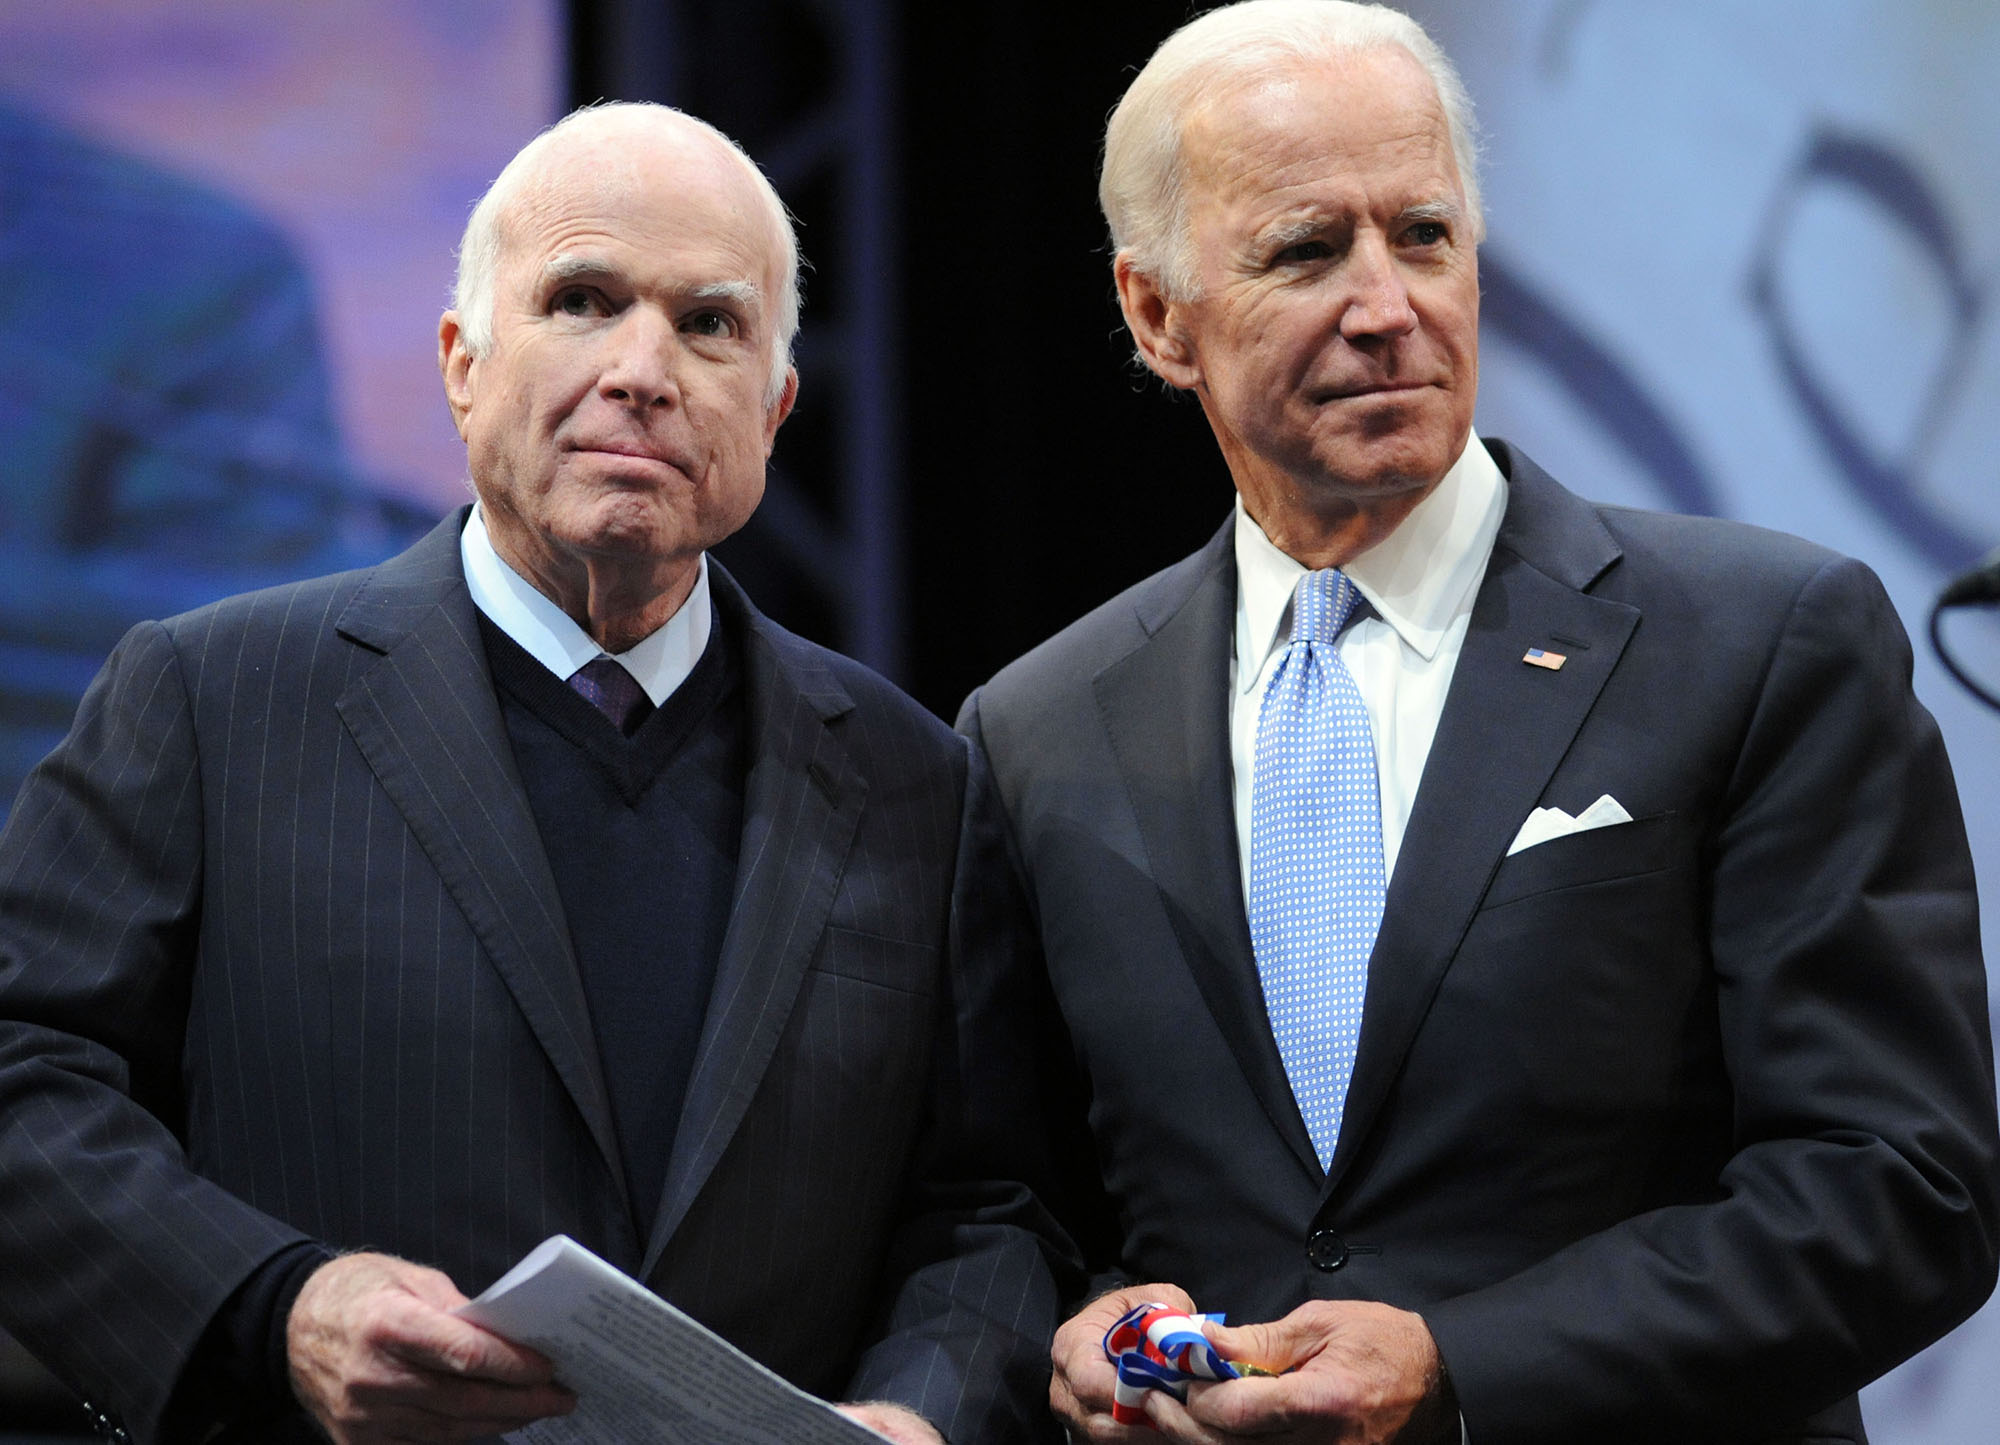 Sen. John McCain receives the the 2017 Liberty Medal from former Vice President Joe Biden at the National Constitution Center on October 16, 2017 in Philadelphia, Pennsylvania.